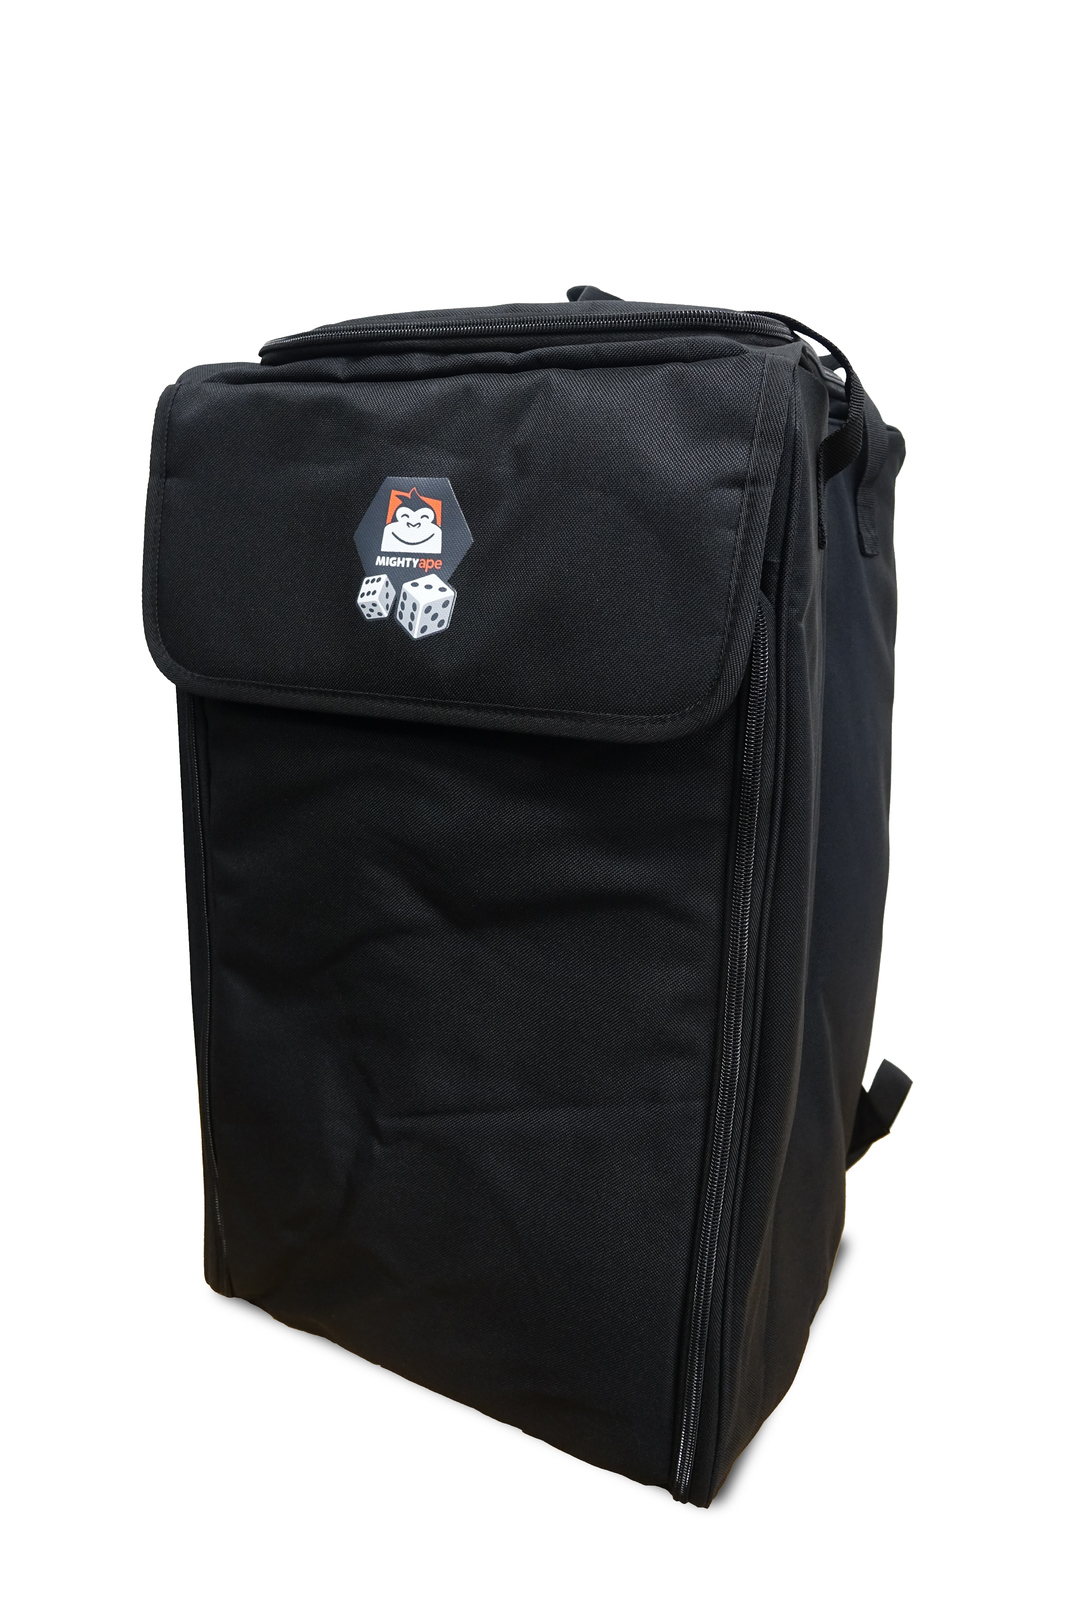 Mighty Ape: Board Game Bag - Backpack image